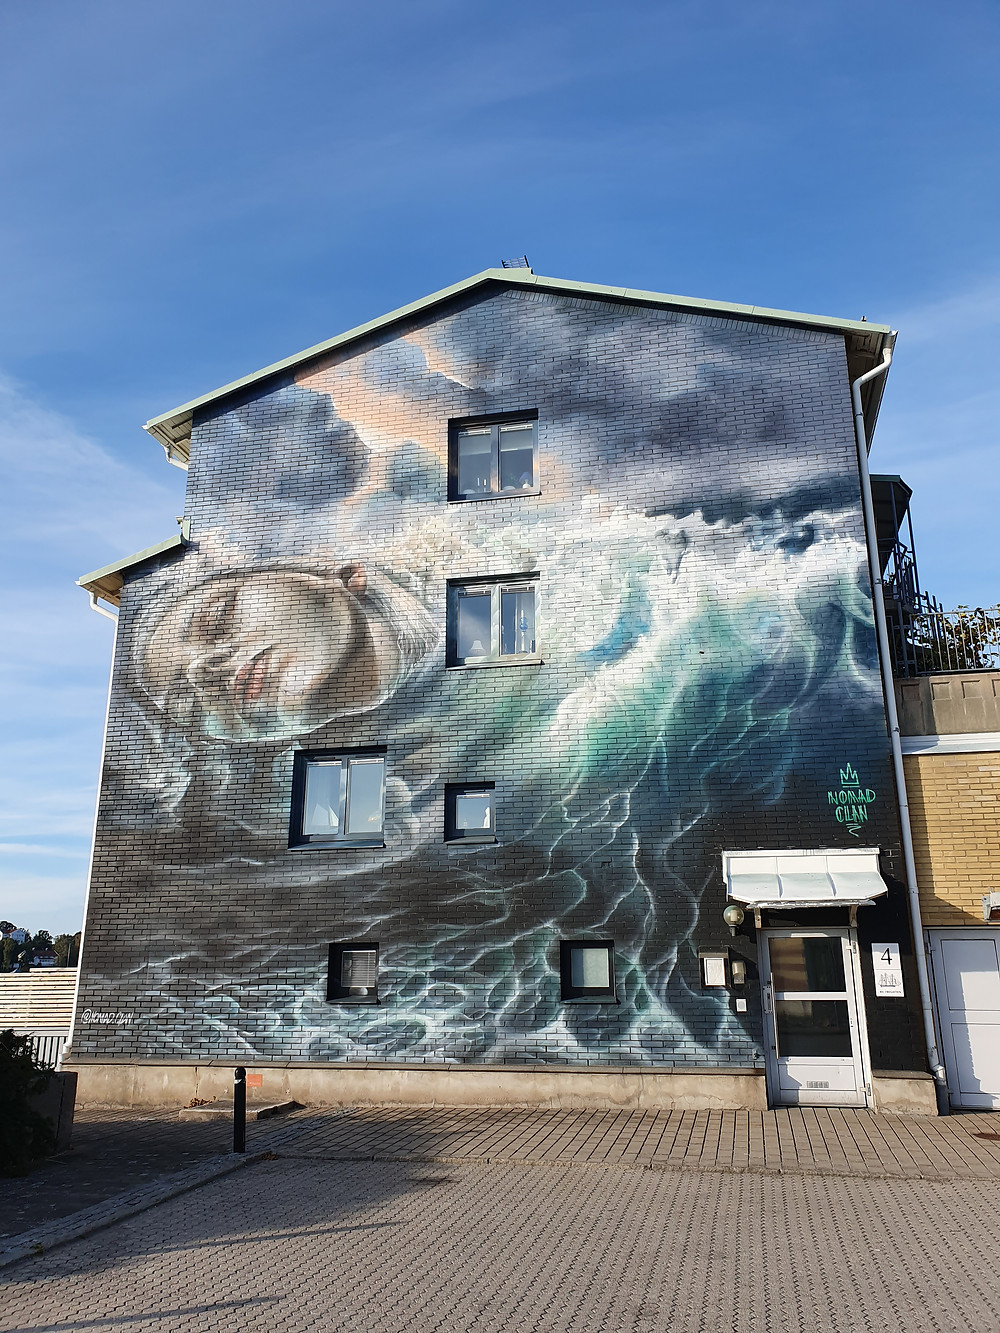 Amaxing and detailed Street Art in Stenungsund Sweden. Nomad Clan did this Big Mural for the Artscape Saga Street Art Project 2019.